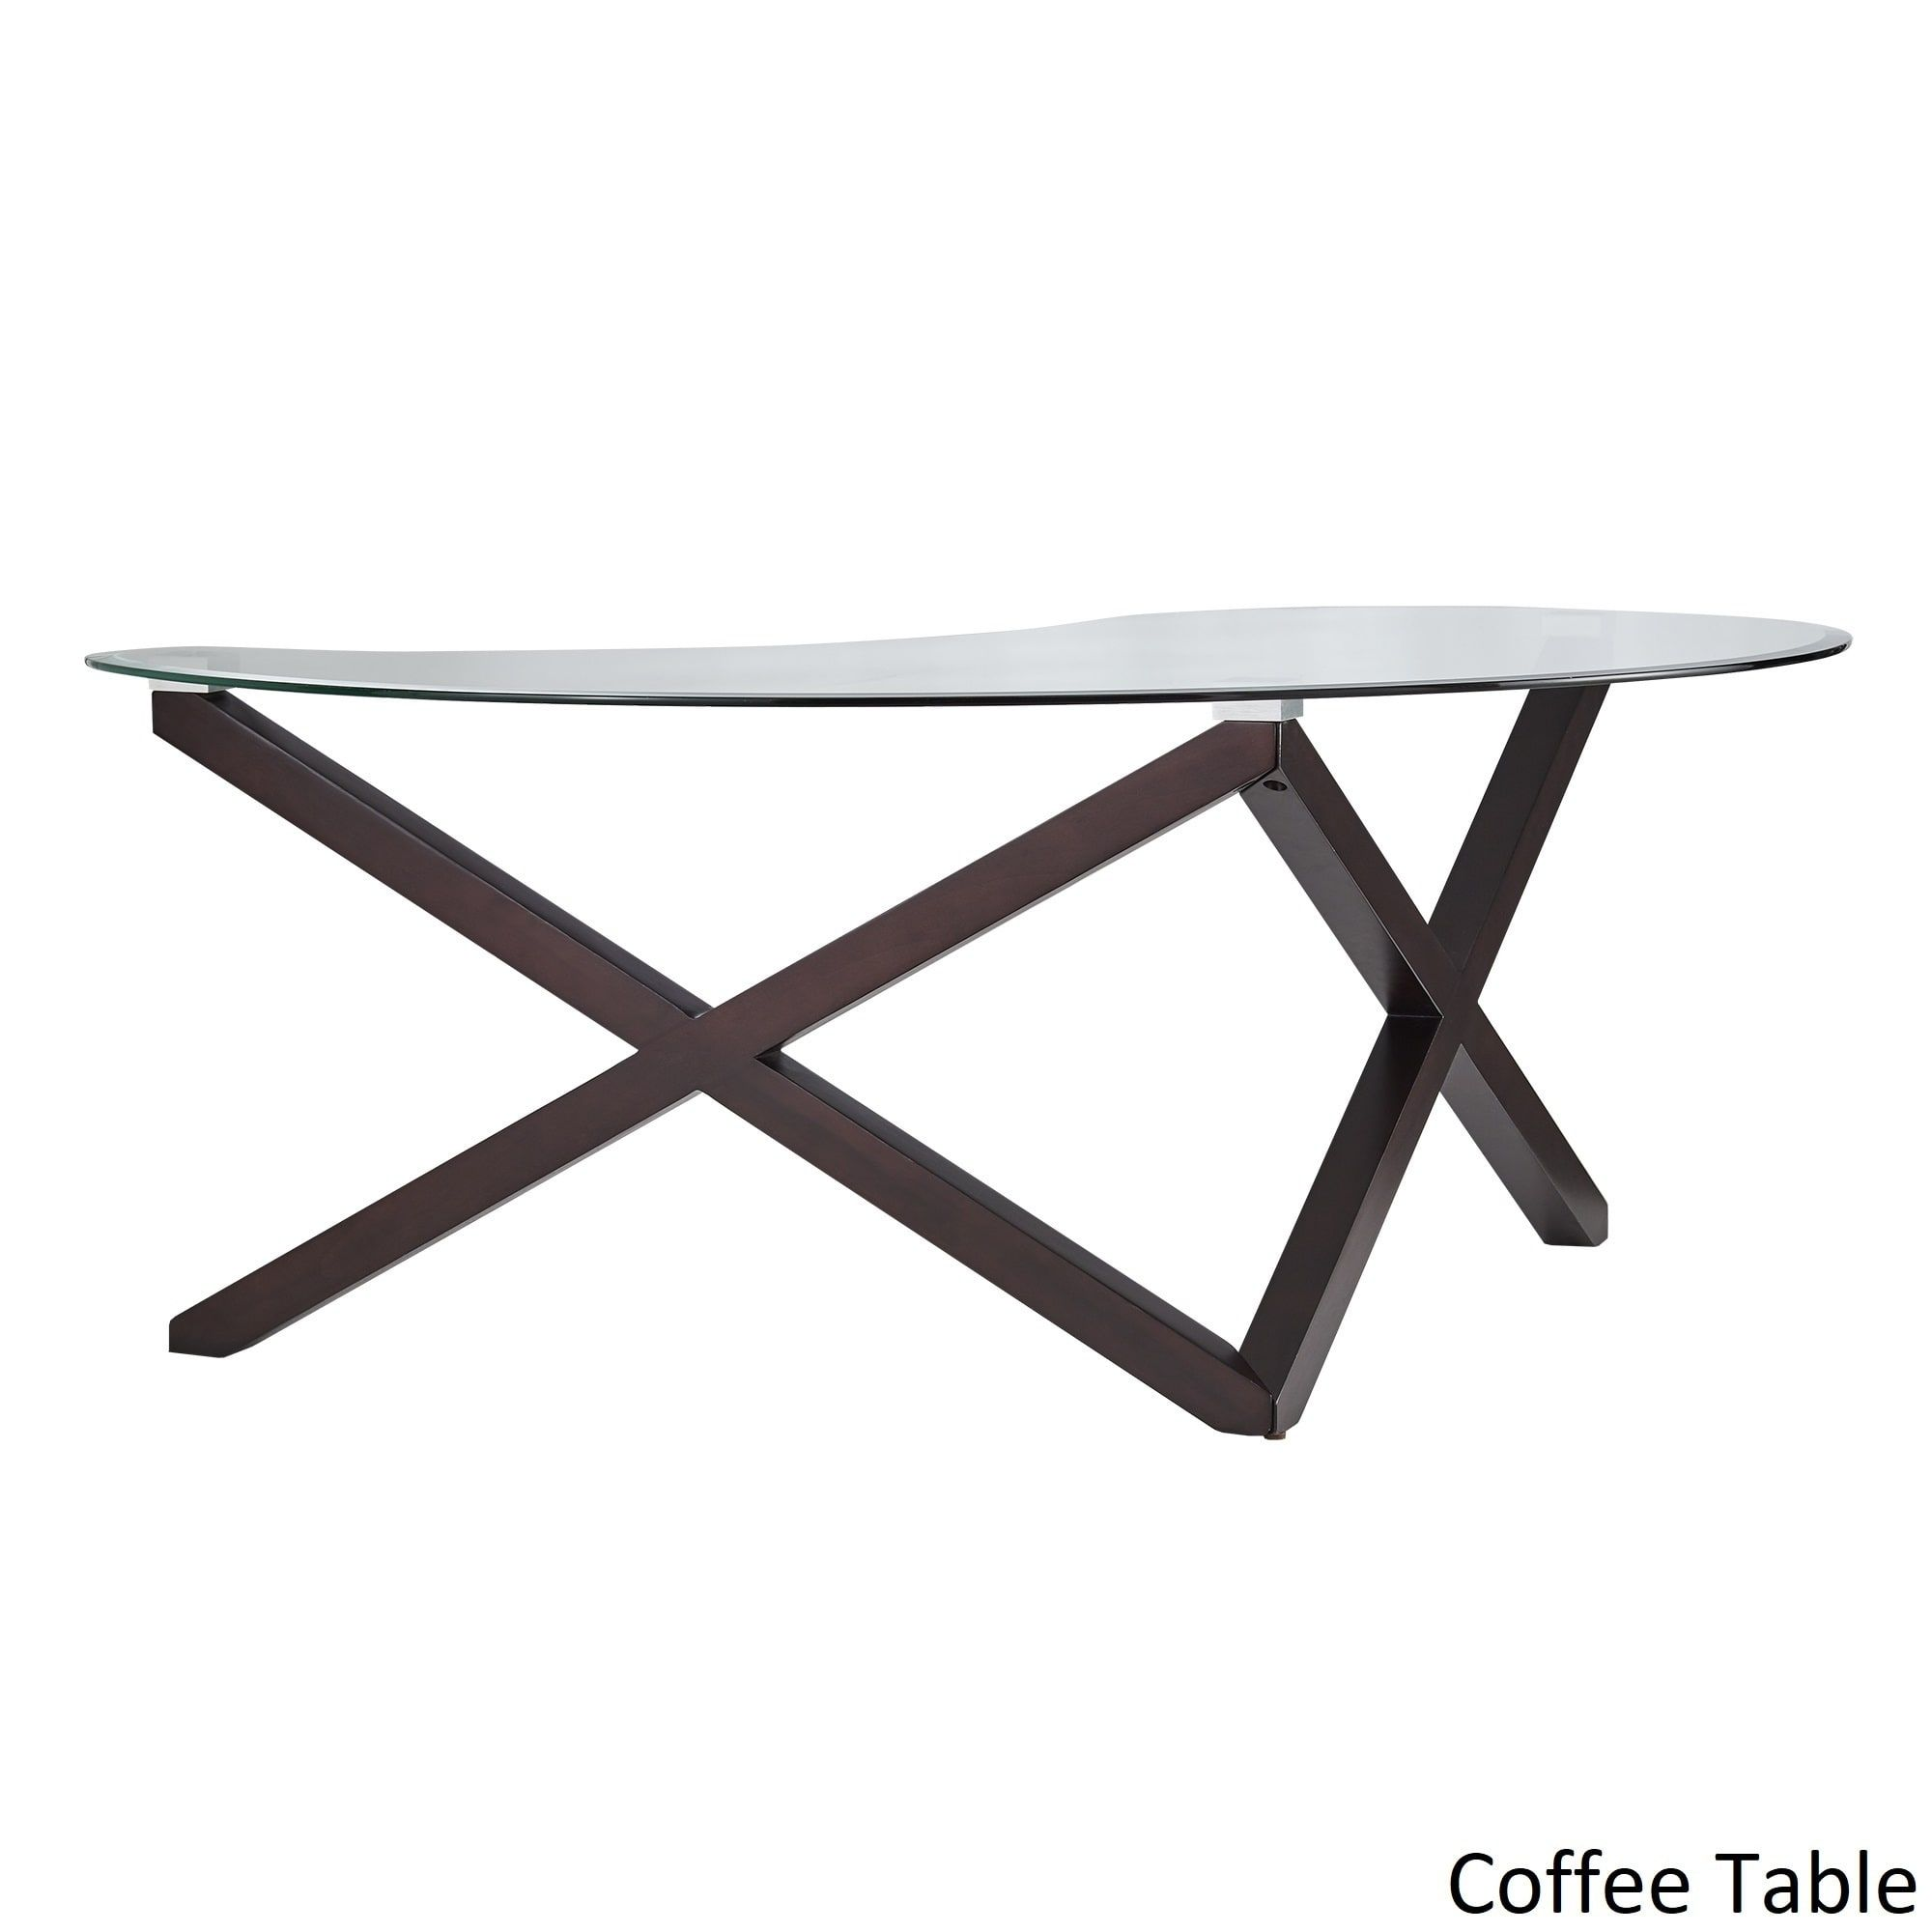 cora contemporary glass top base accent tables inspire modern solid wood farmhouse dining table target dressing tall nightstands clearance round mirror outdoor seating furniture